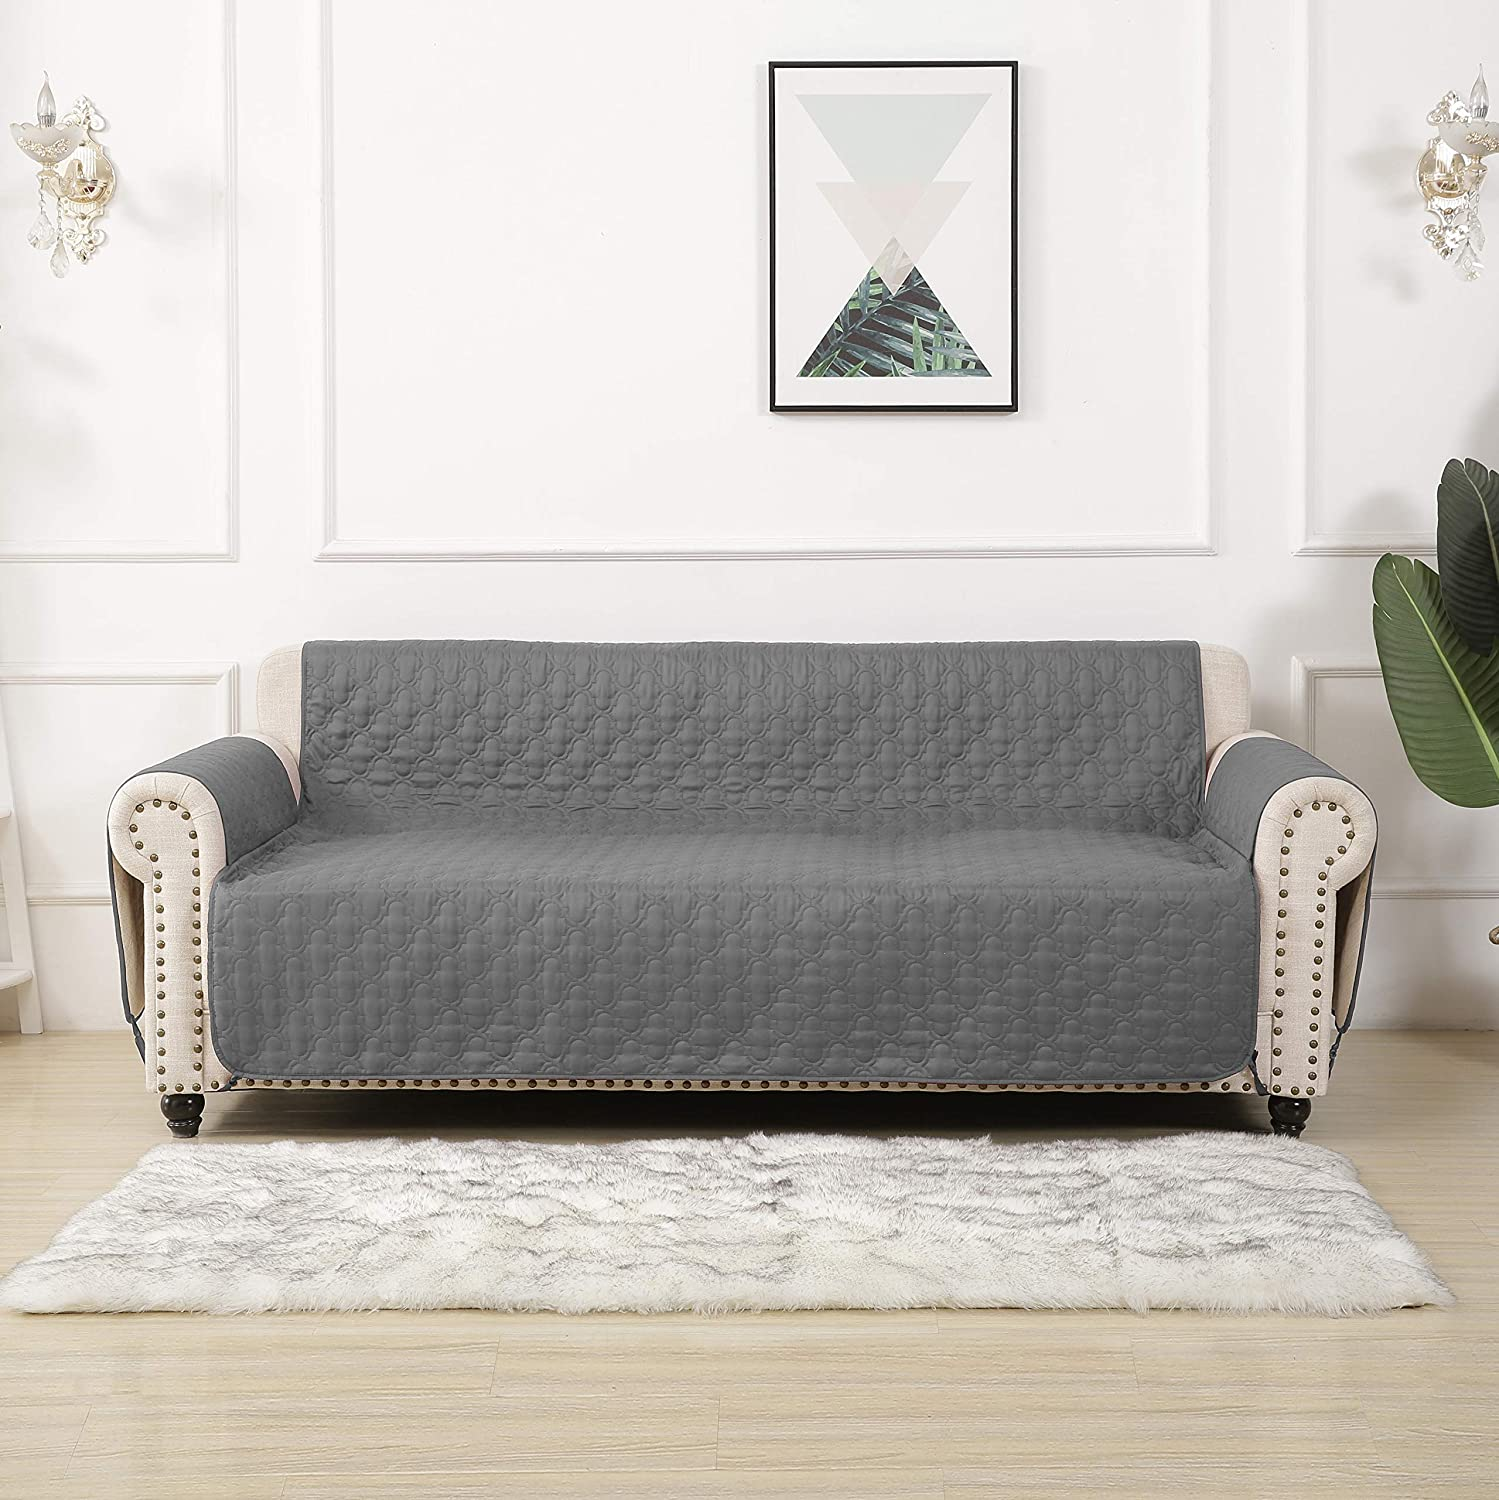 RBSC Home Spring new work one after another Sofa Many popular brands Cover with Couch Pockets fo Side Waterproof